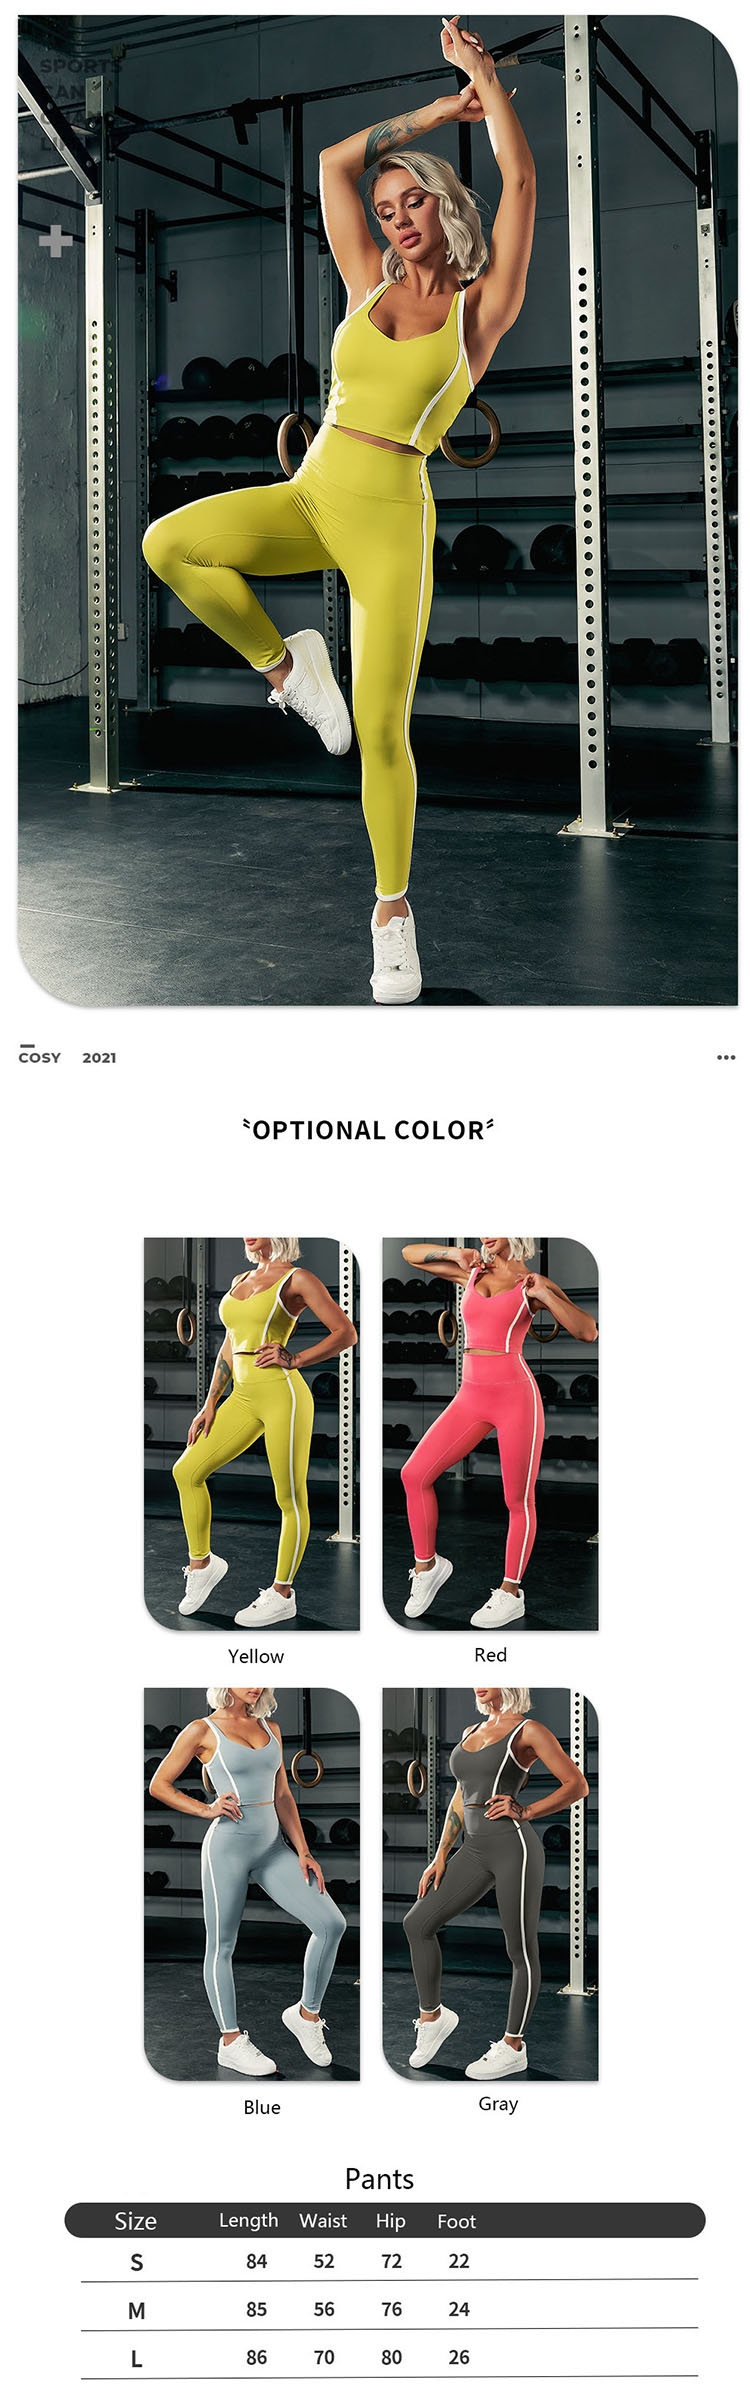 The changing design of grey athletic leggings is the key direction in the pattern development of dresses